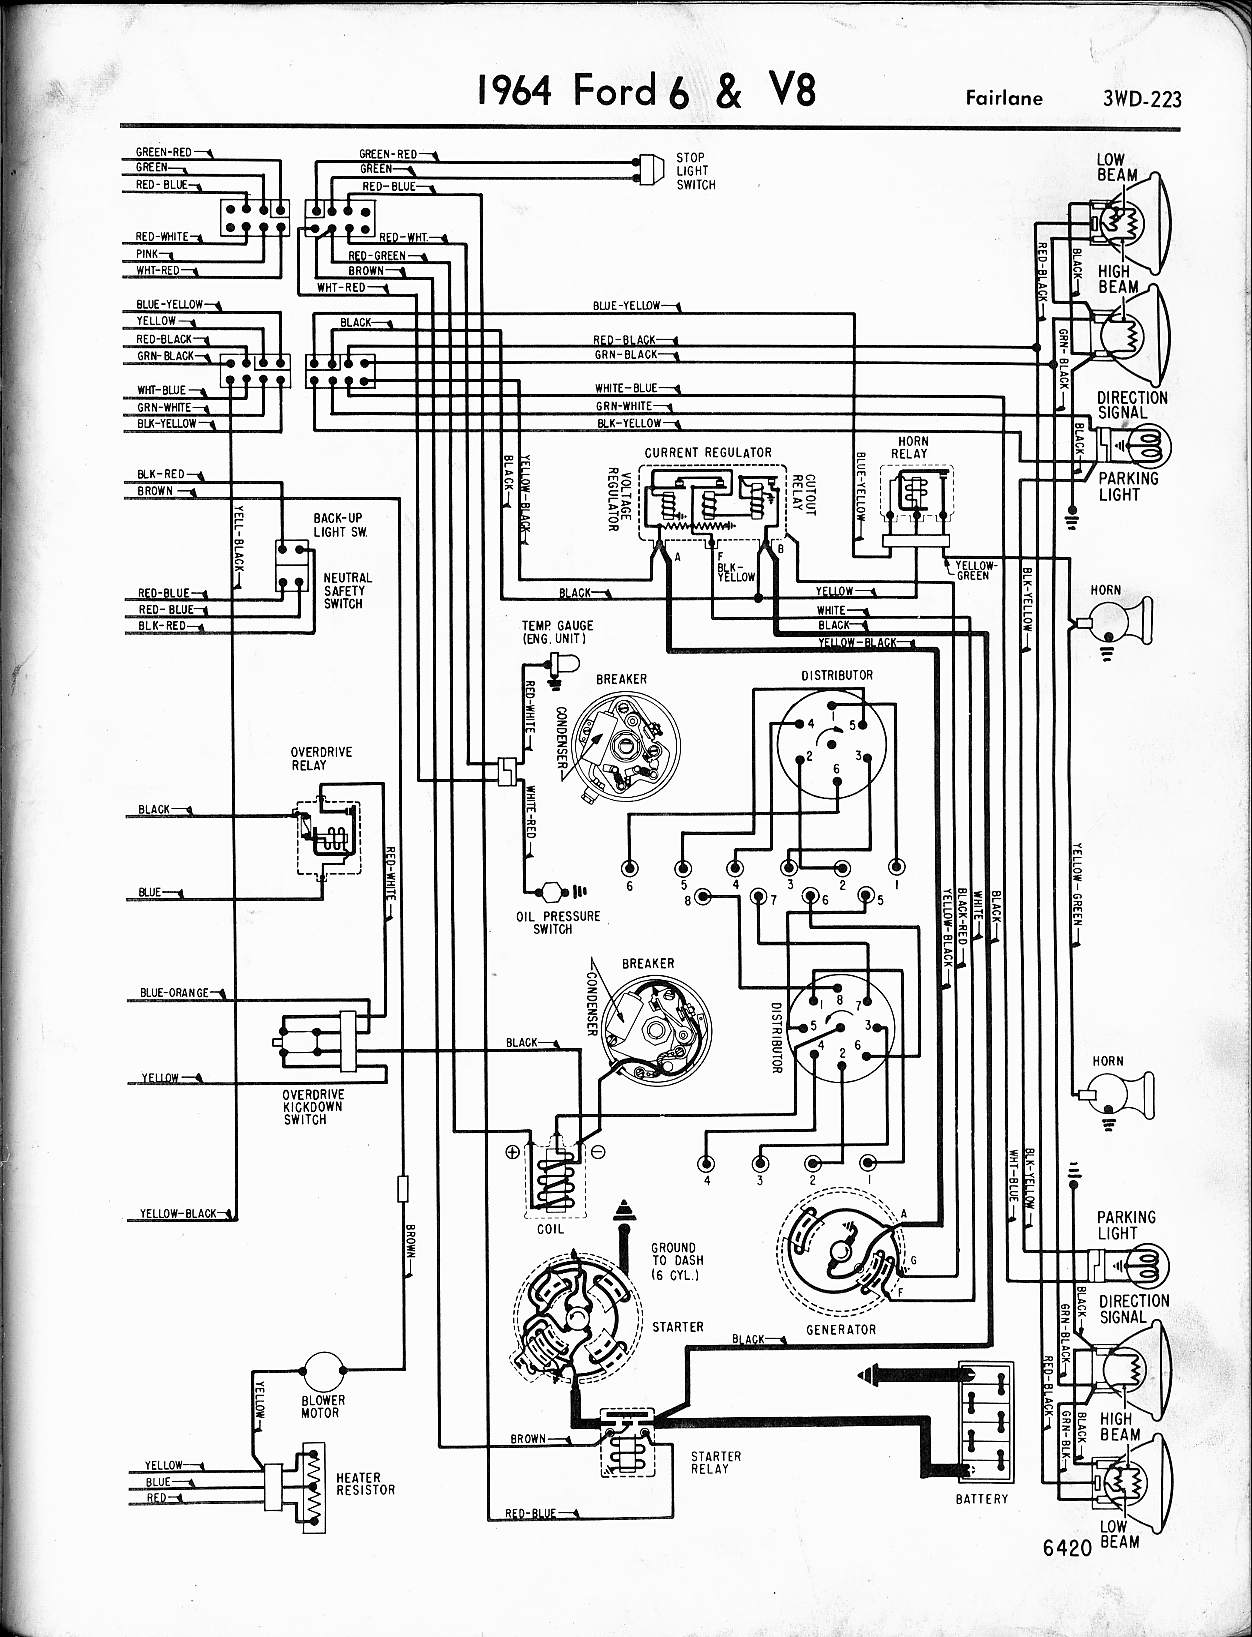 MWire5765 223 1964 ford f100 wiring diagram 1966 ford truck wiring diagram 1964 ford wiring diagram at aneh.co